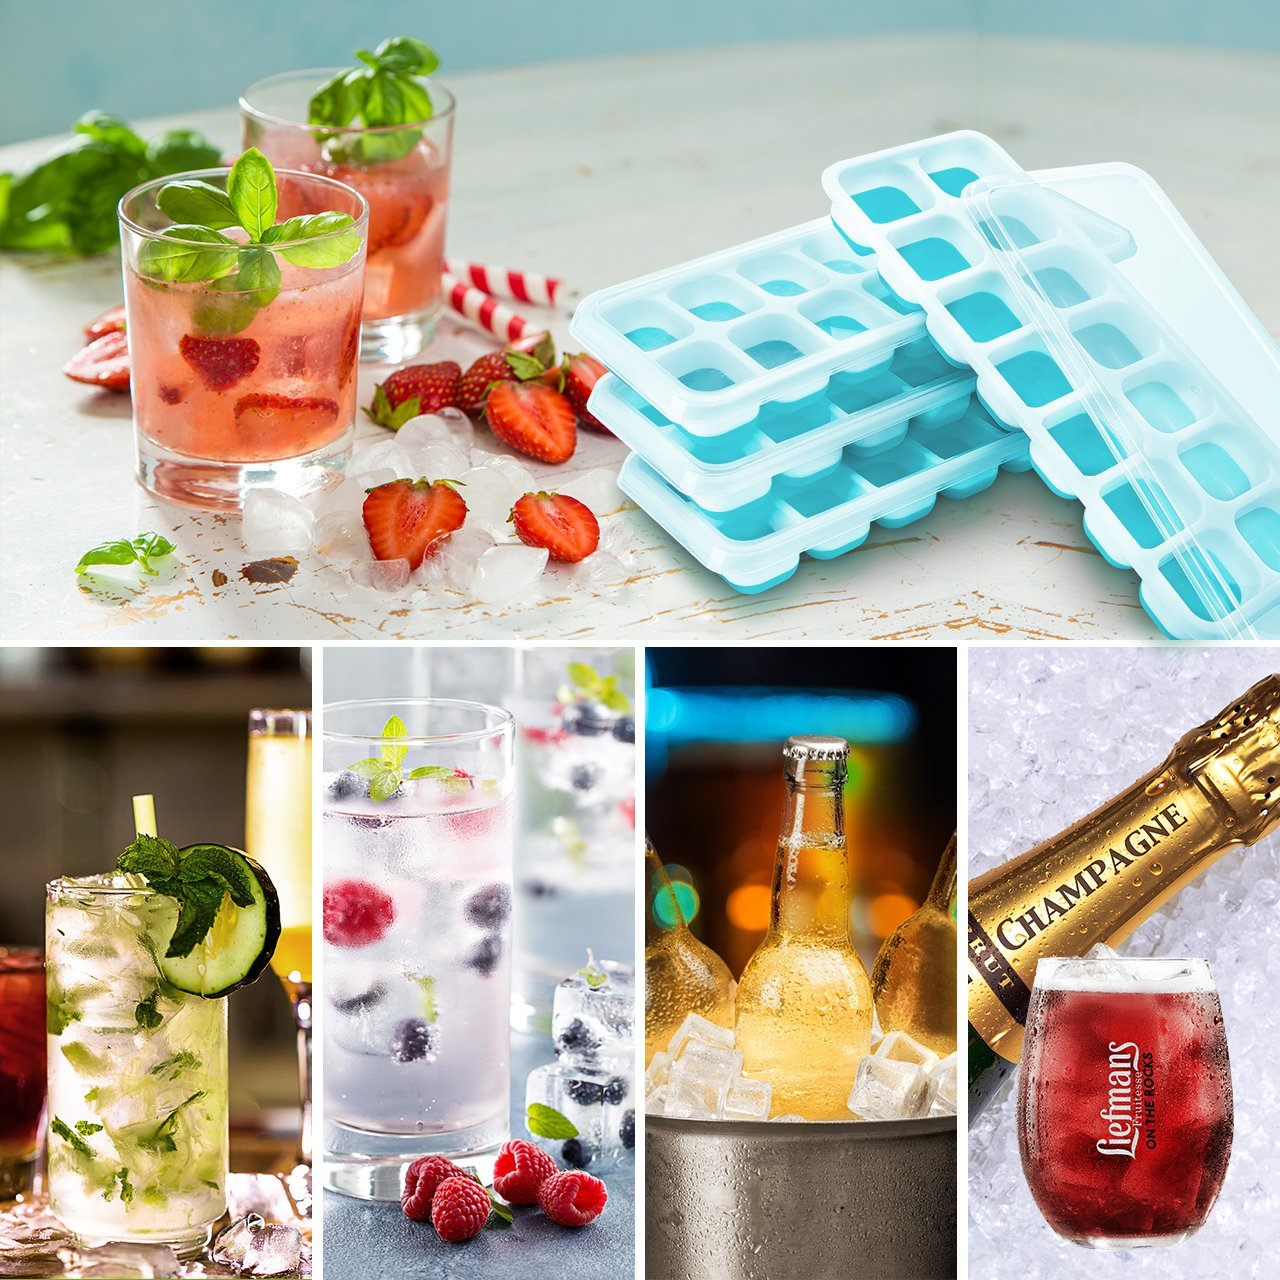 Lfgb Certified BPA Free Moulds with Non-Spill Lid Water Cocktail and other Drink TOPELEK 4 Packs Ice Cube Tray Baby Food Best for Freezer Green Whiskey